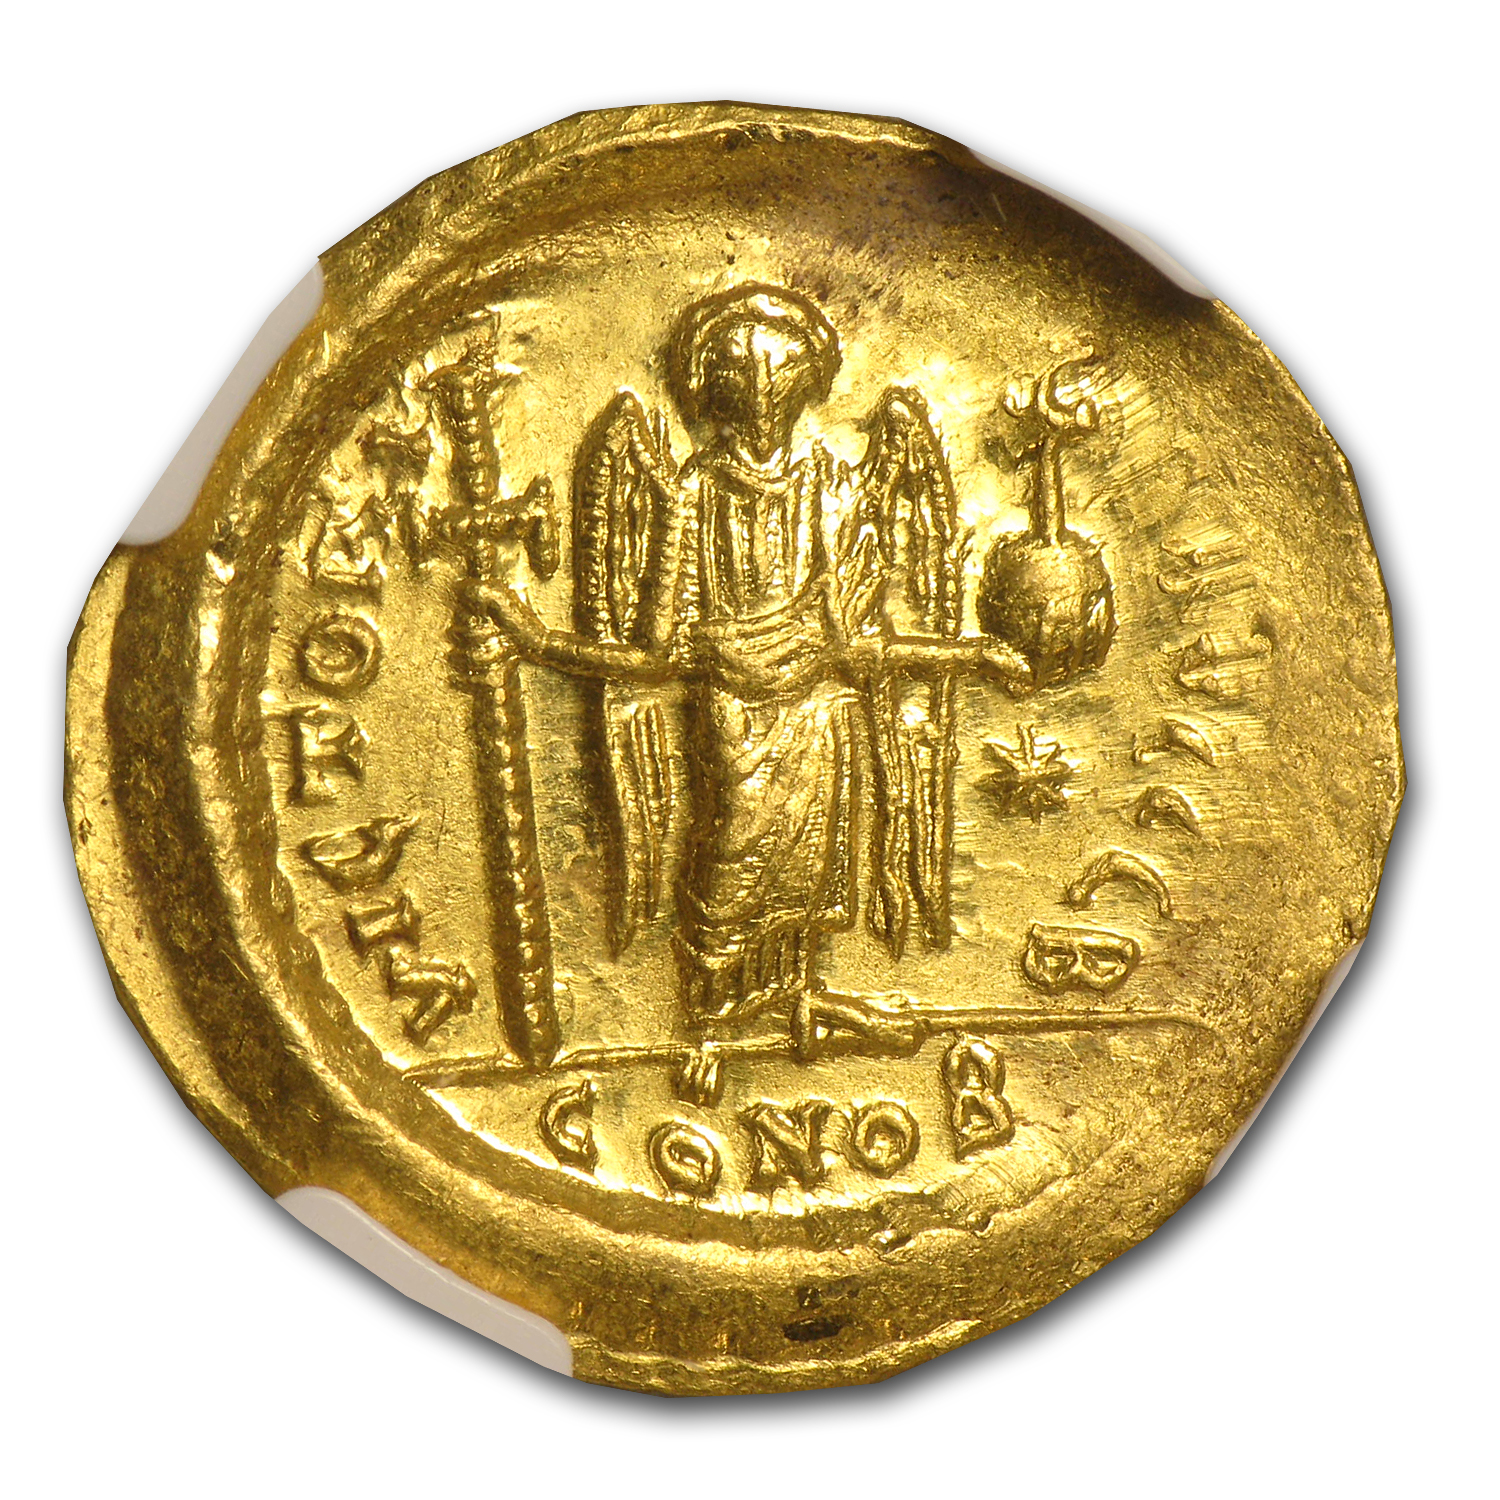 Byzantine Gold Solidus Justin I MS NGC (518-527 AD)